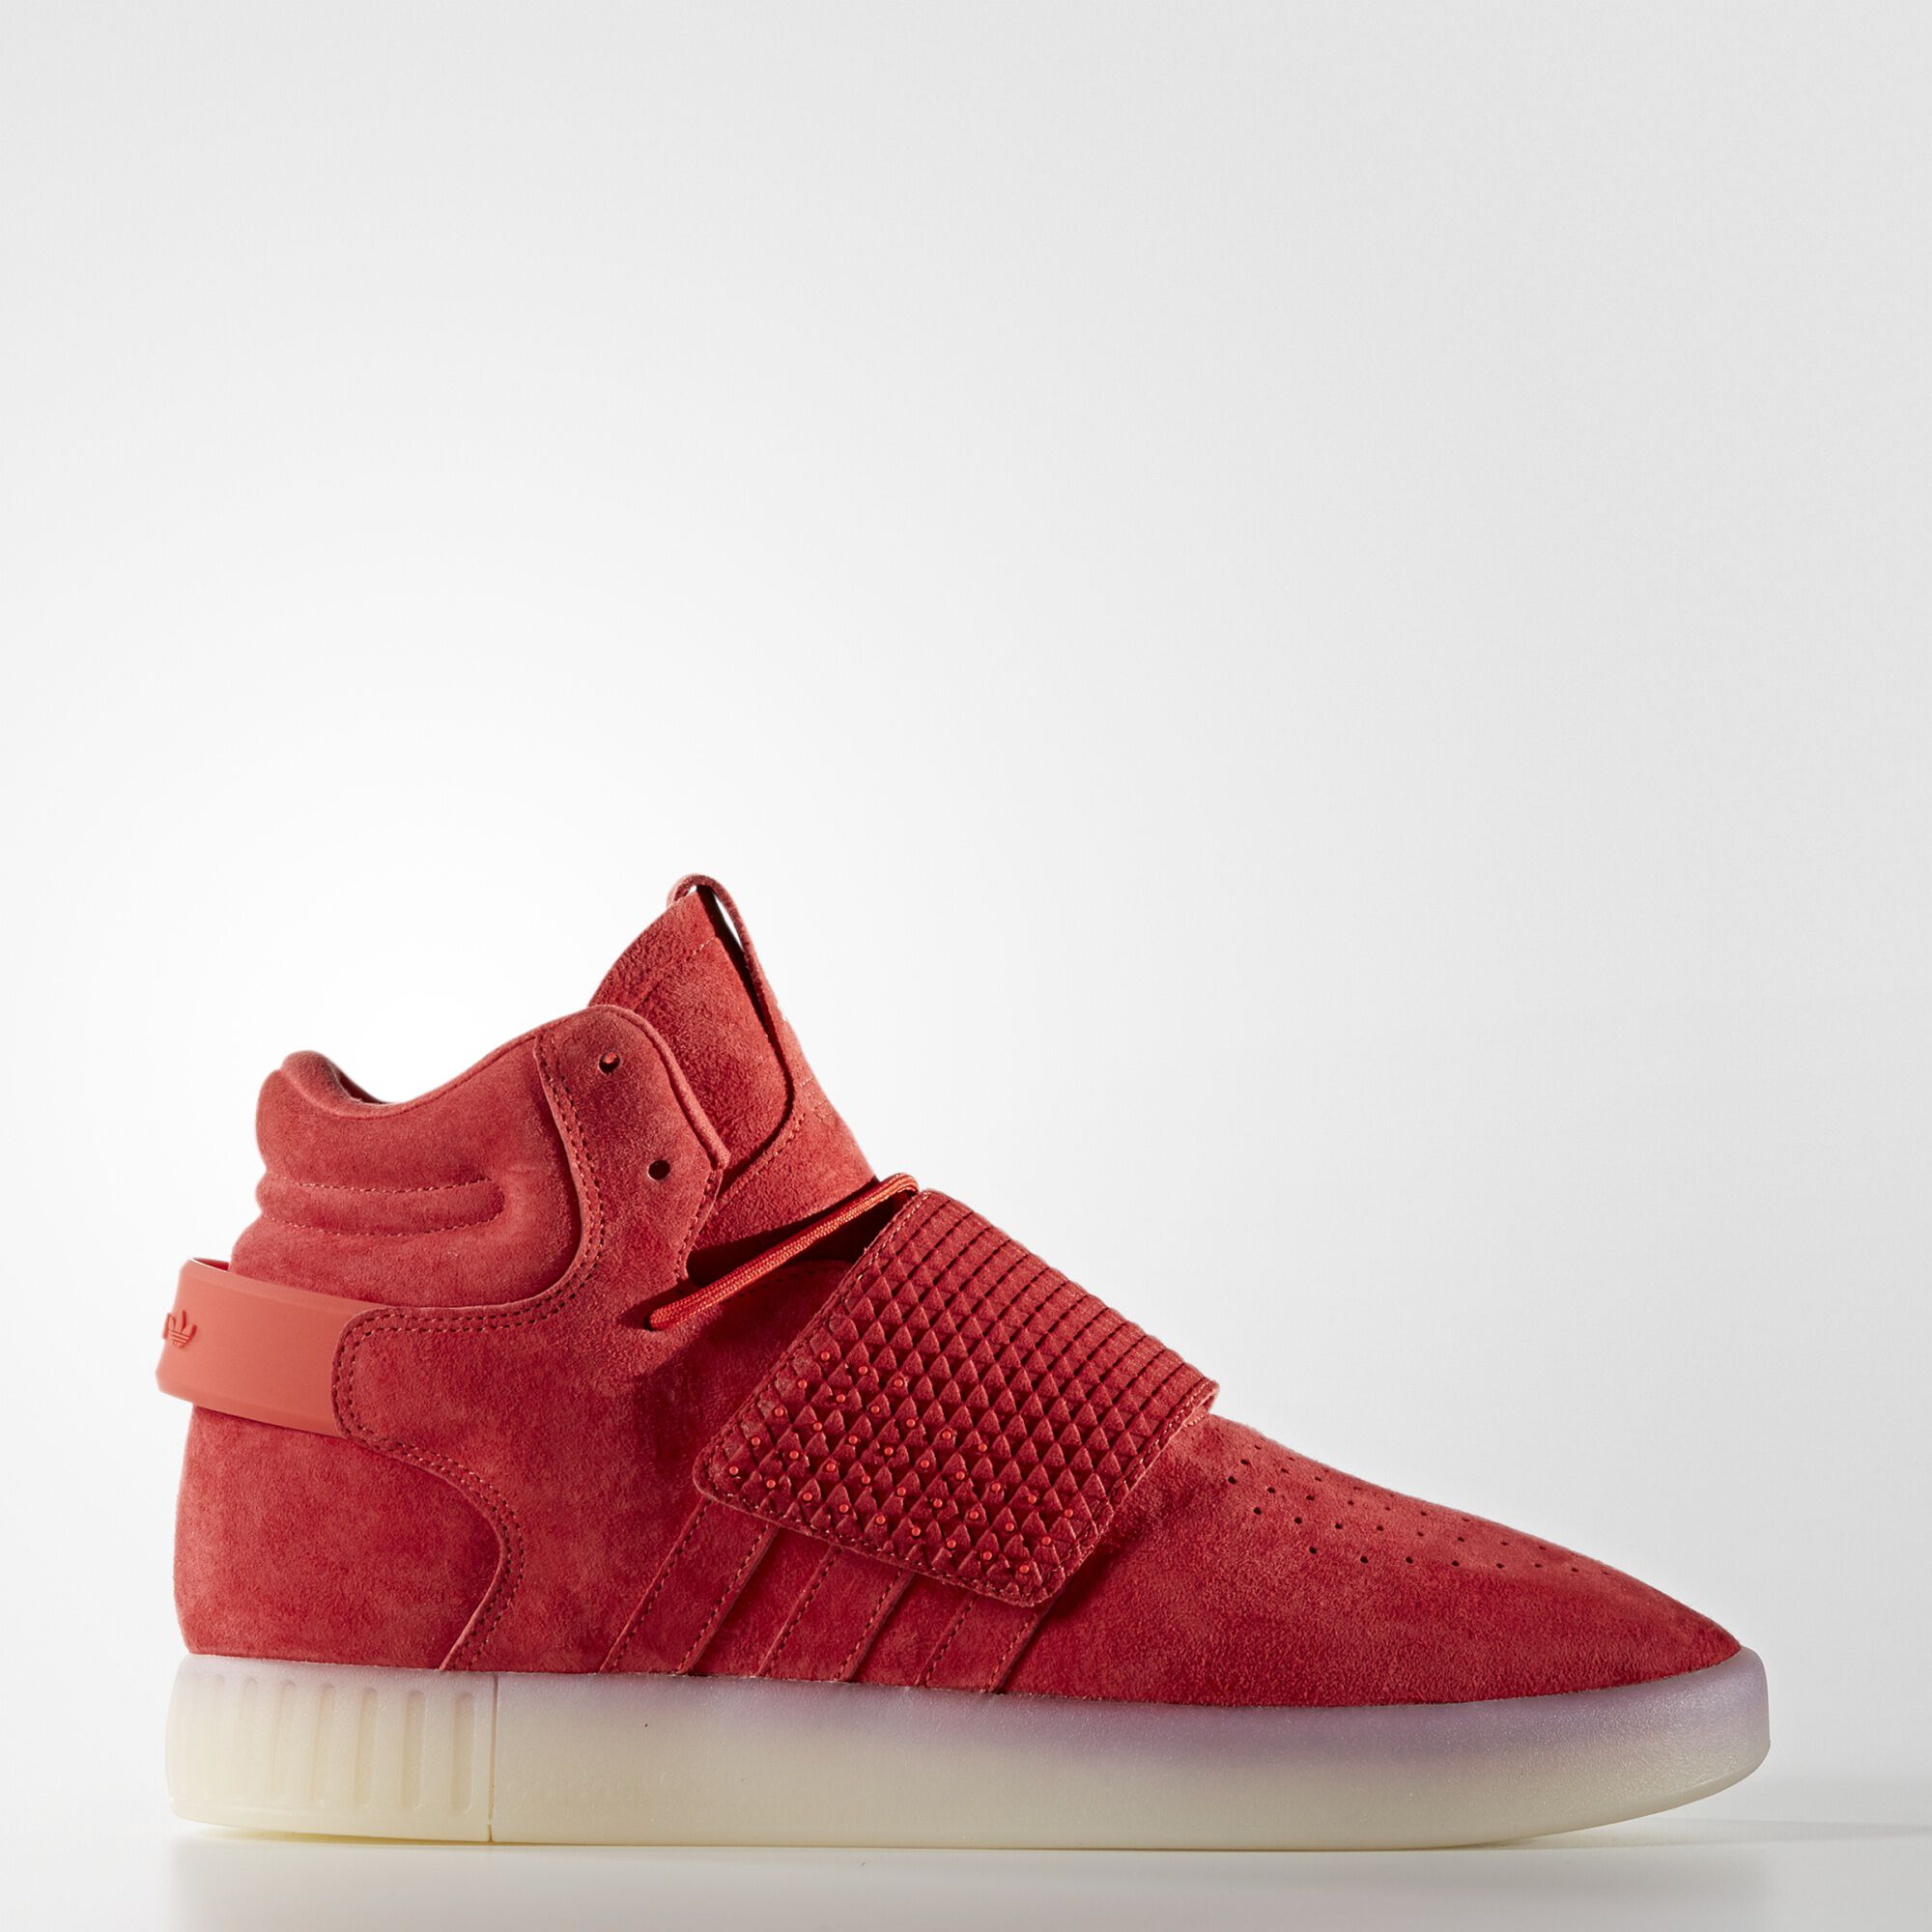 Adidas Tubular High Top Red